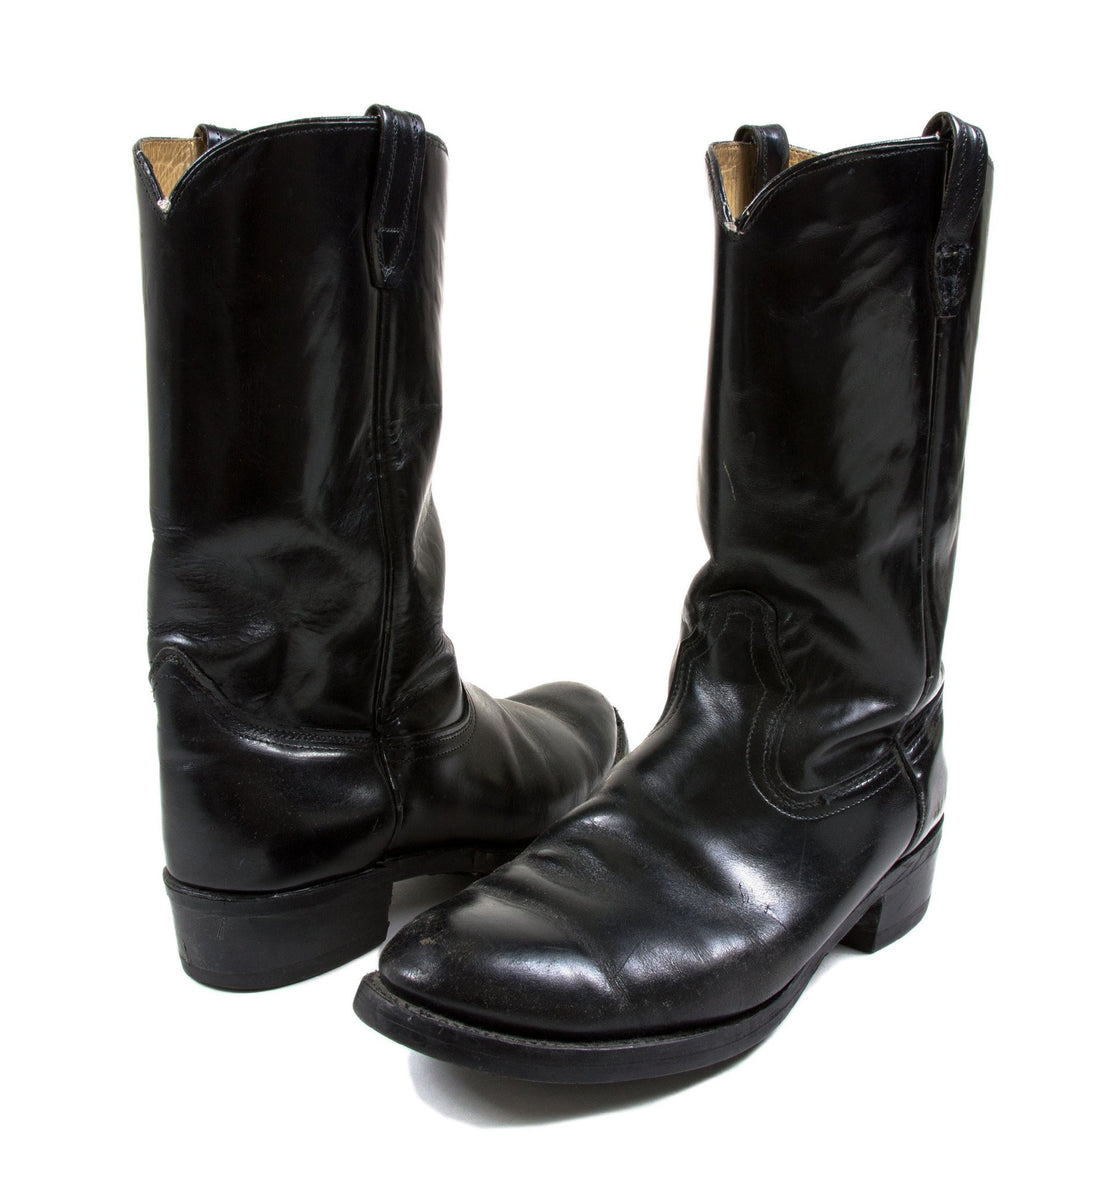 Vintage Black Leather Biltrite Boots - Vintage - Iron and Resin